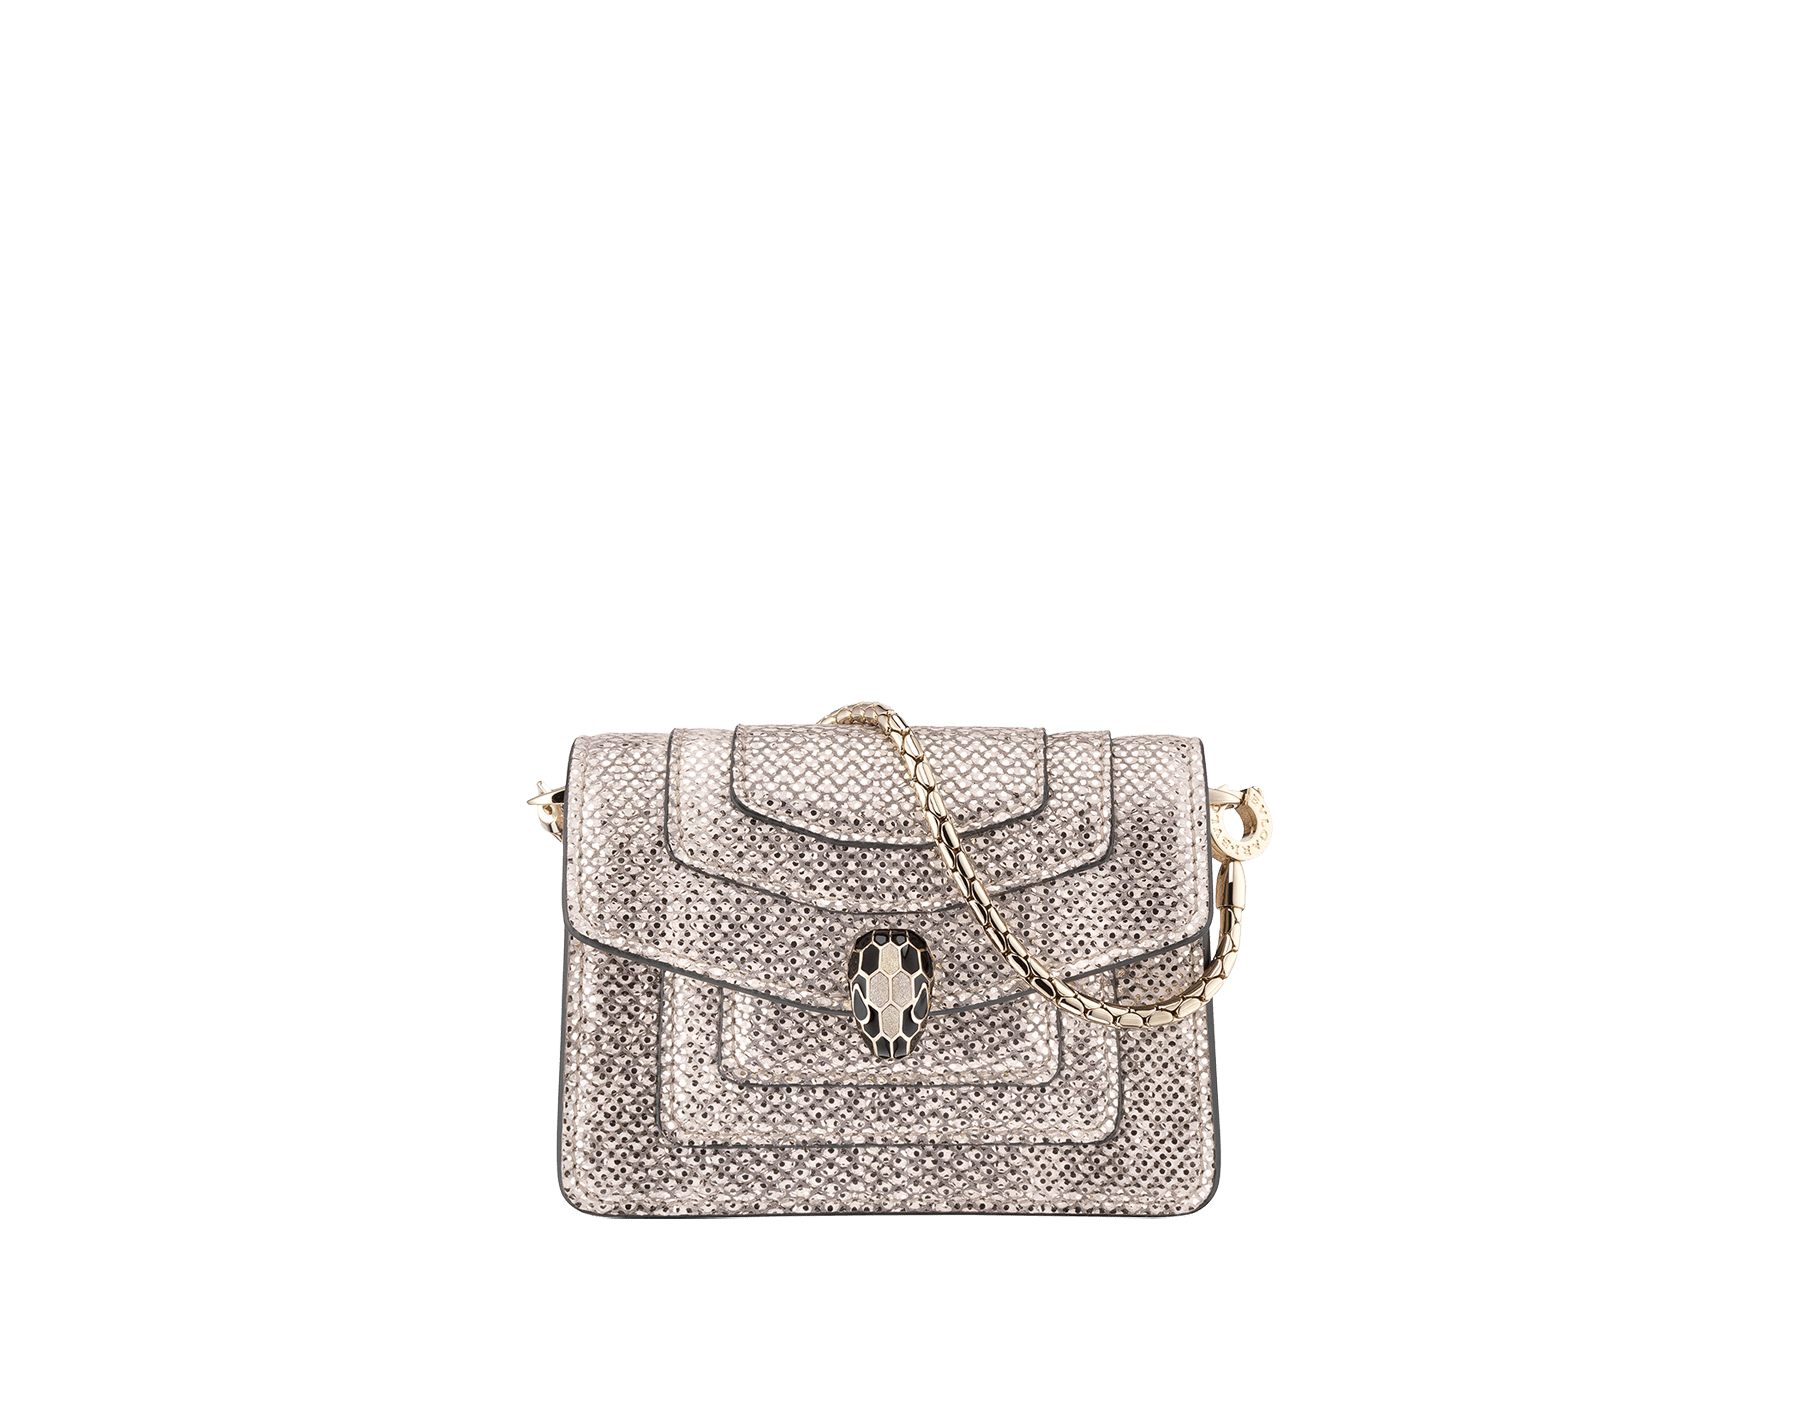 Ciondolo borsa con miniatura Serpenti Forever in karung metallizzato bianco opale con fodera in vitello color corallo. Iconica chiusura a pressione Serpenti in ottone placcato oro chiaro, smalto nero e glitter bianco opale con occhi in smalto nero. 288366 image 1